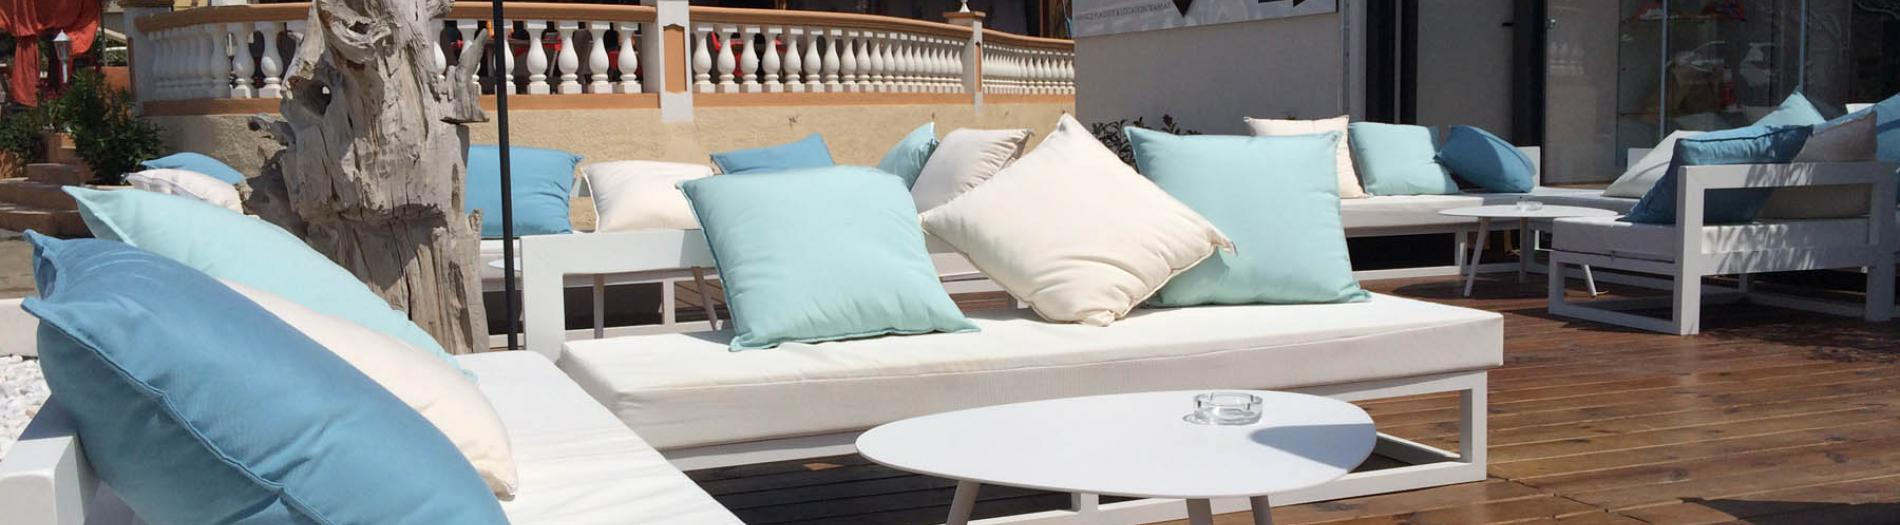 Furniture & fittings: hotel terrace, beach and poolside